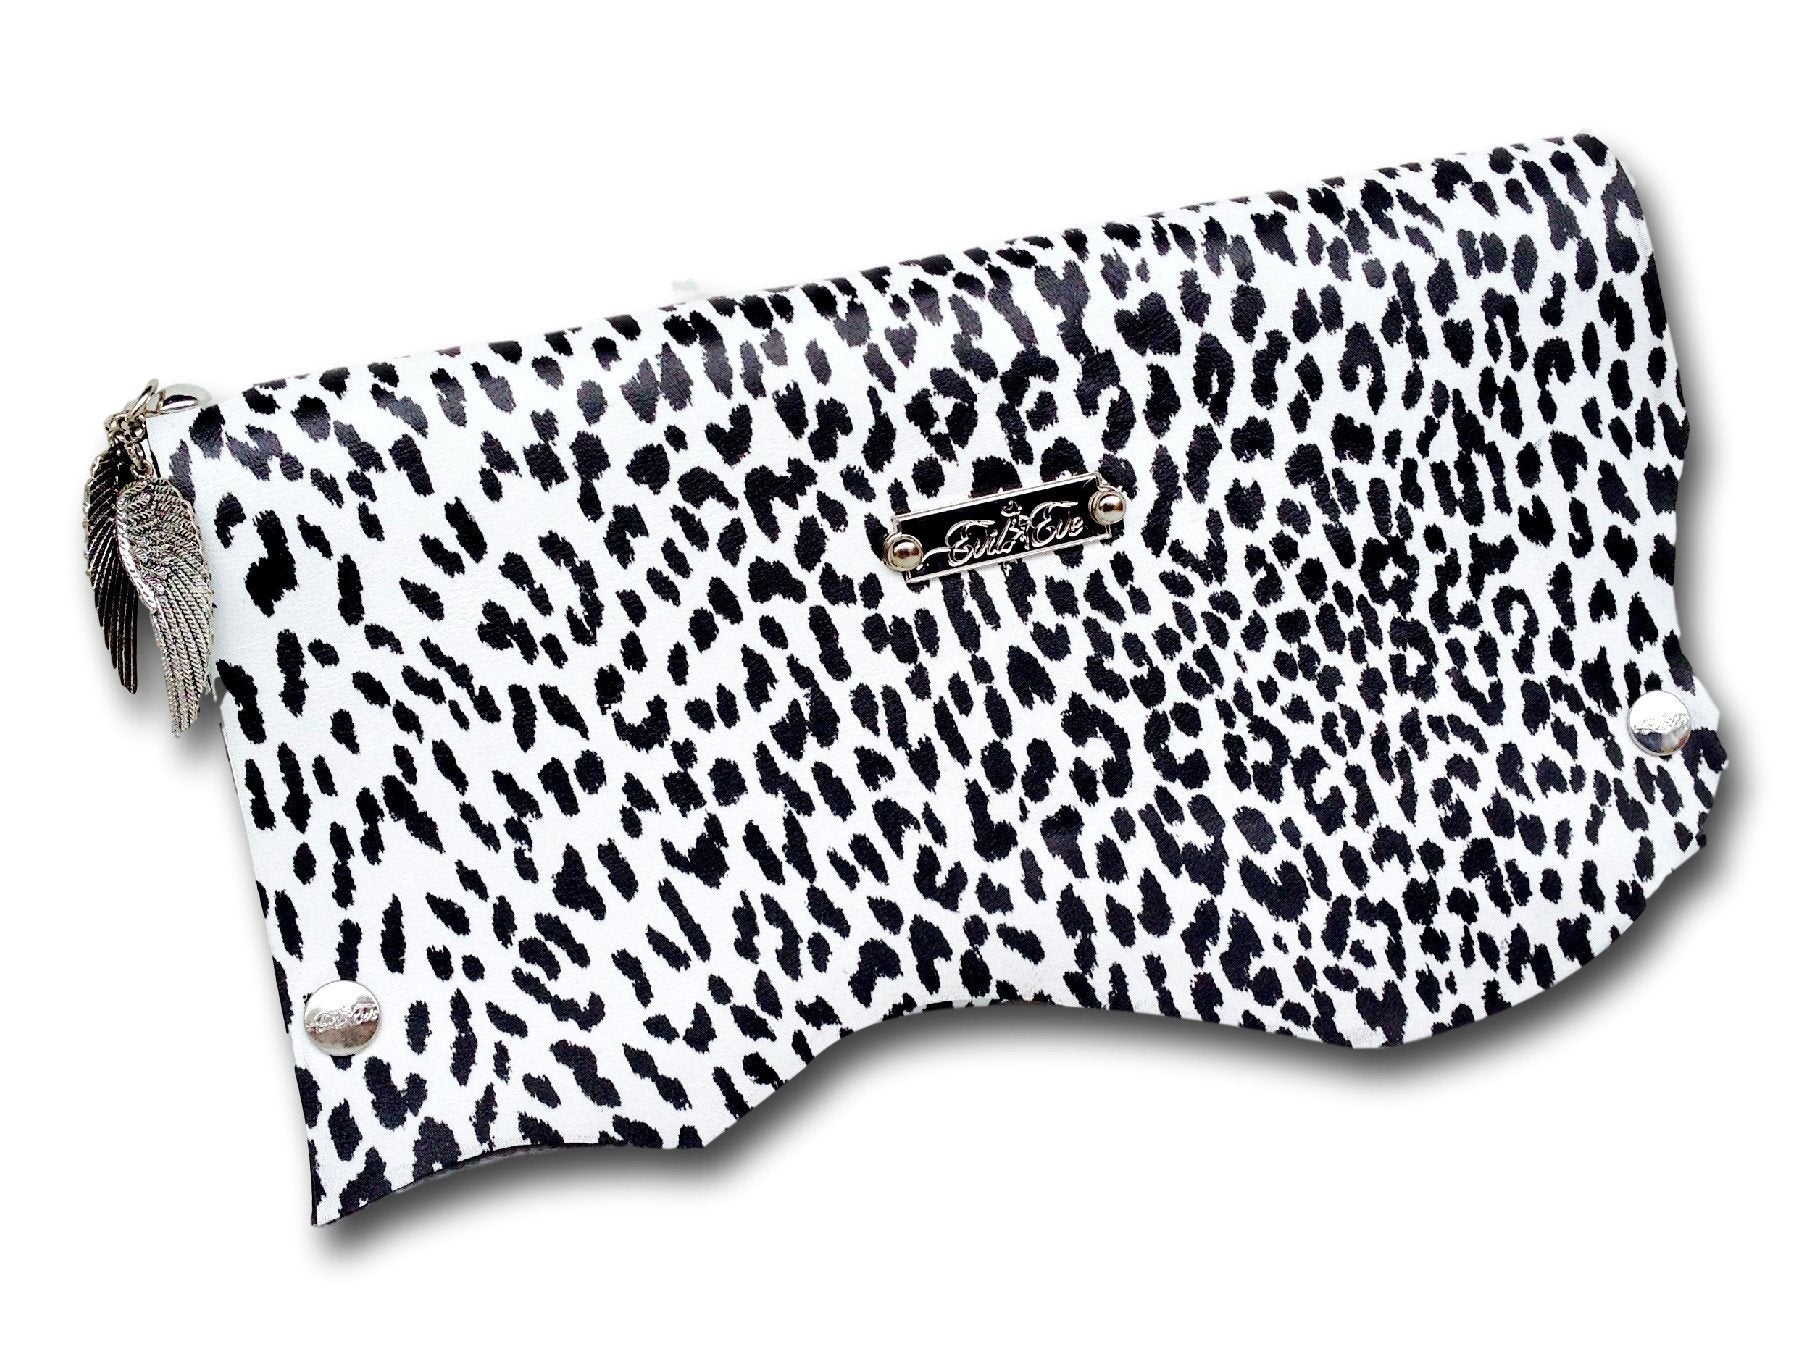 Handmade leather clutch (black/white)